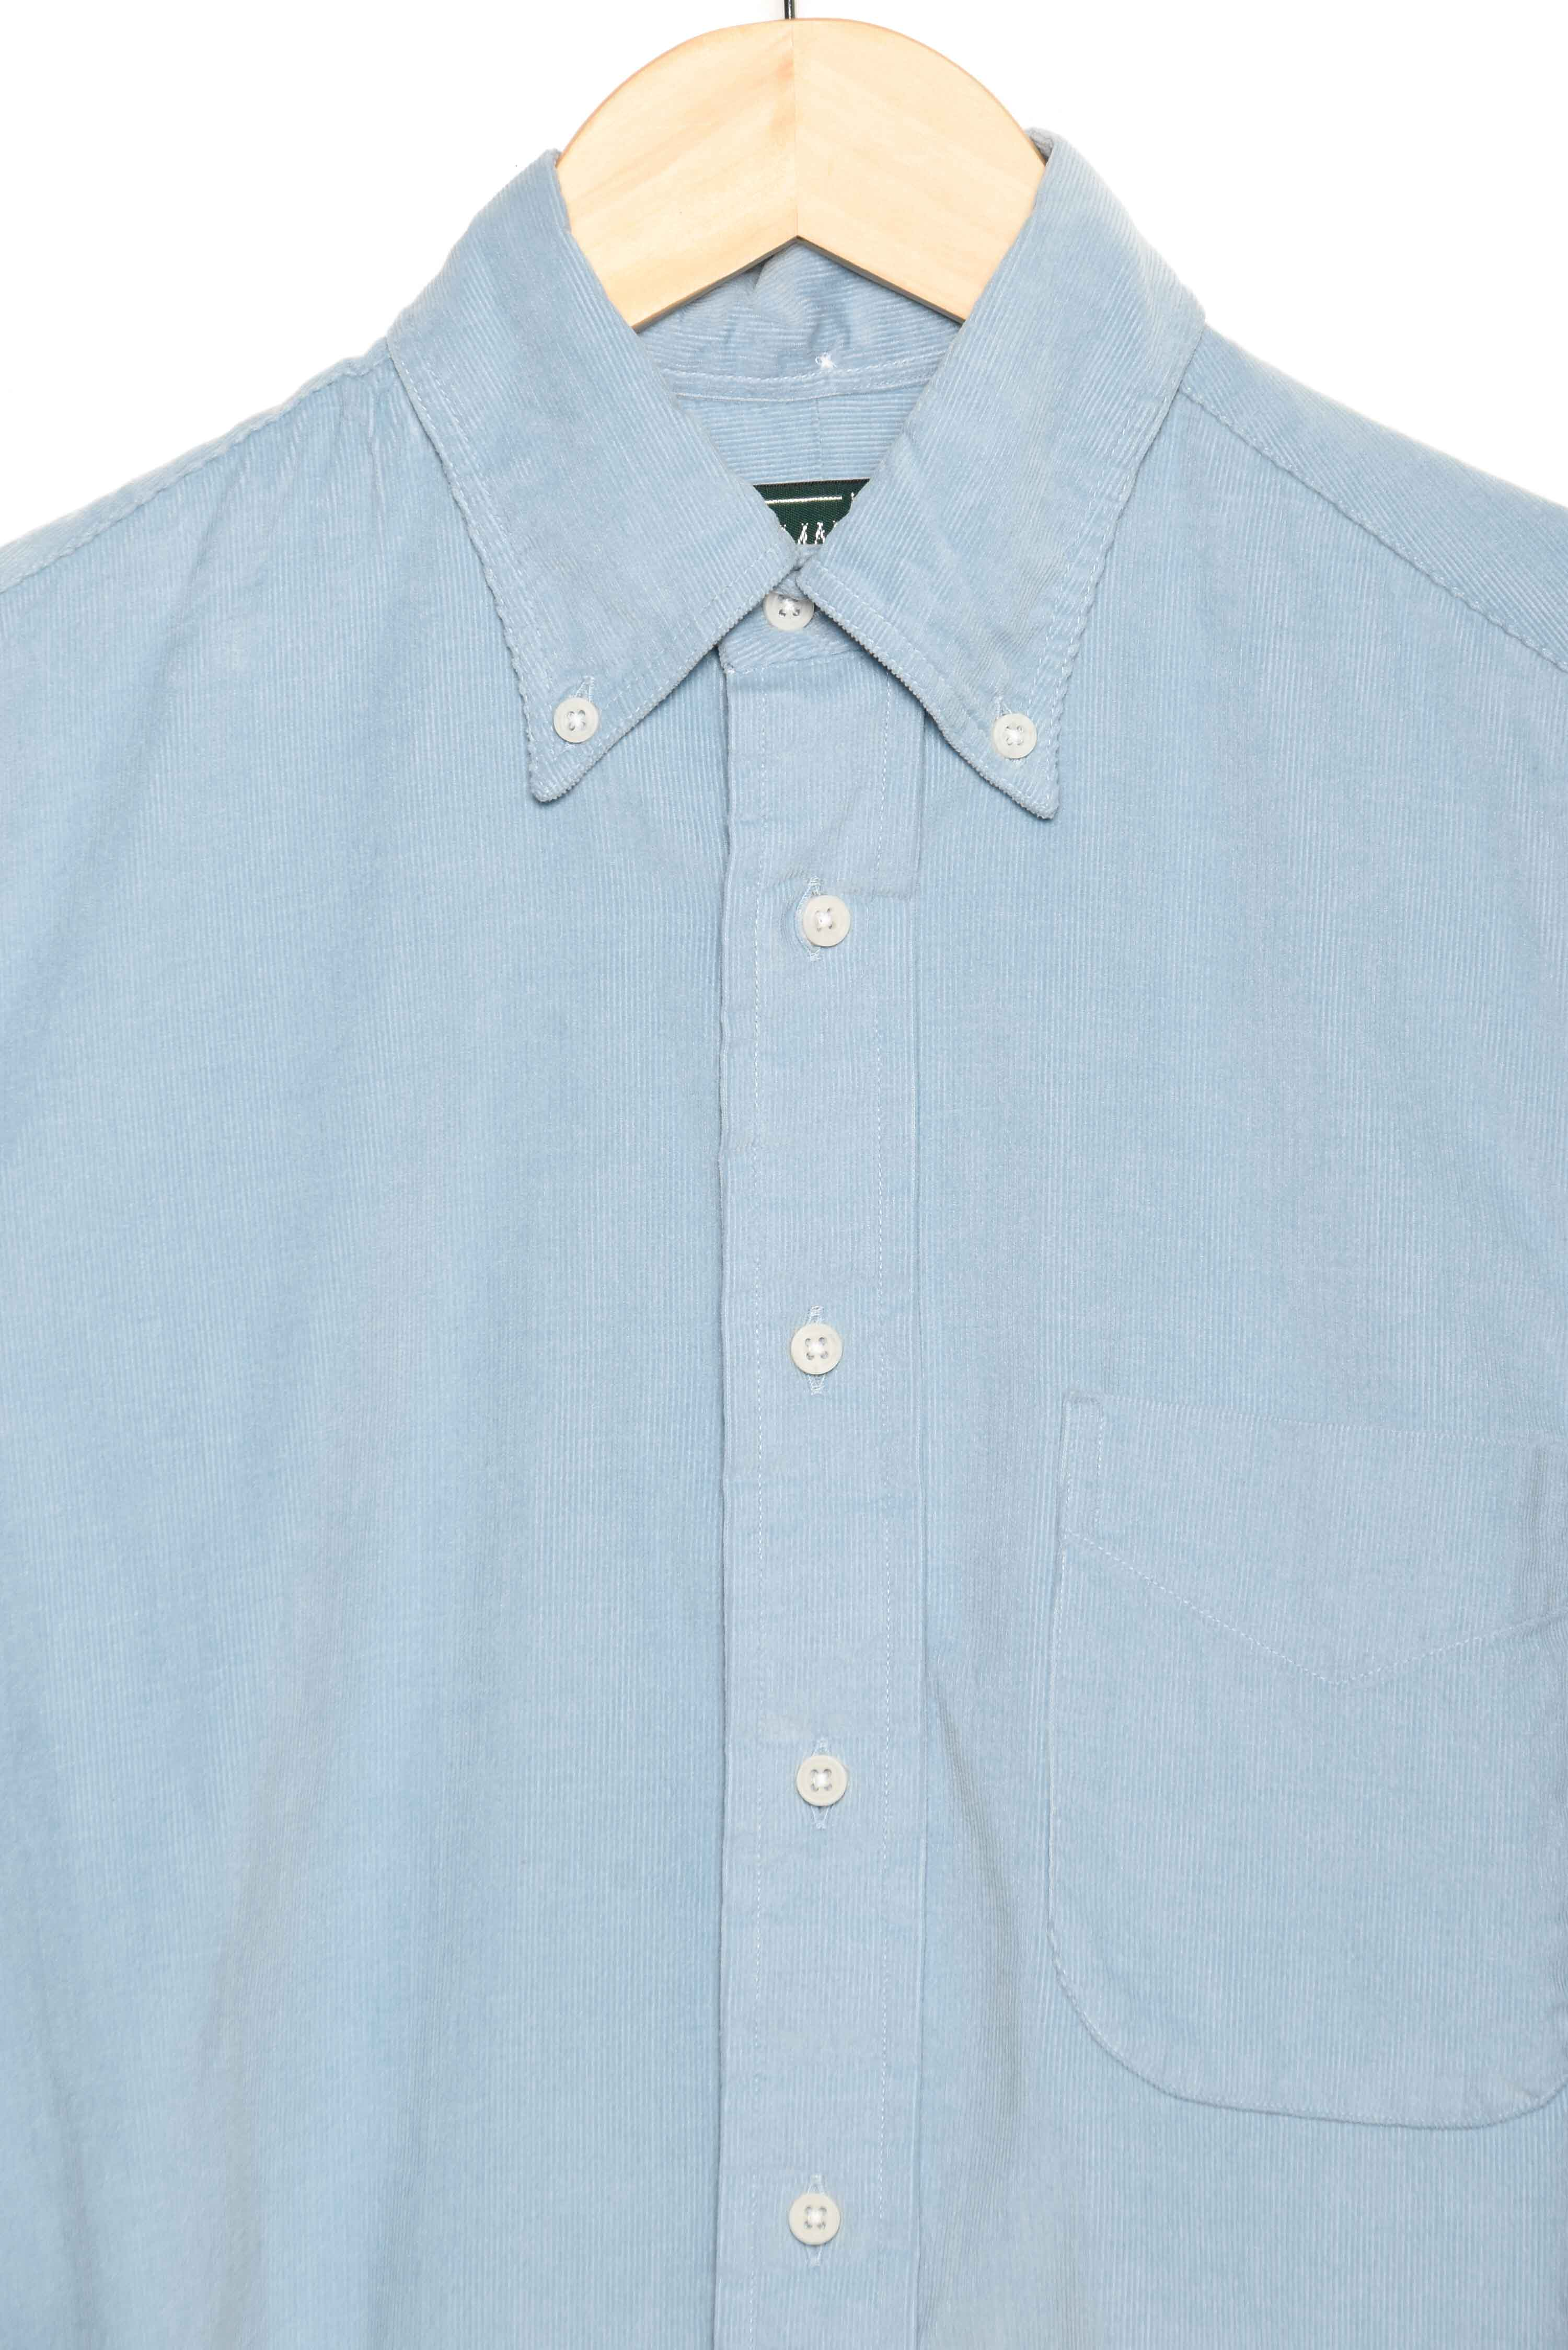 Vintage GV02 Cord light blue